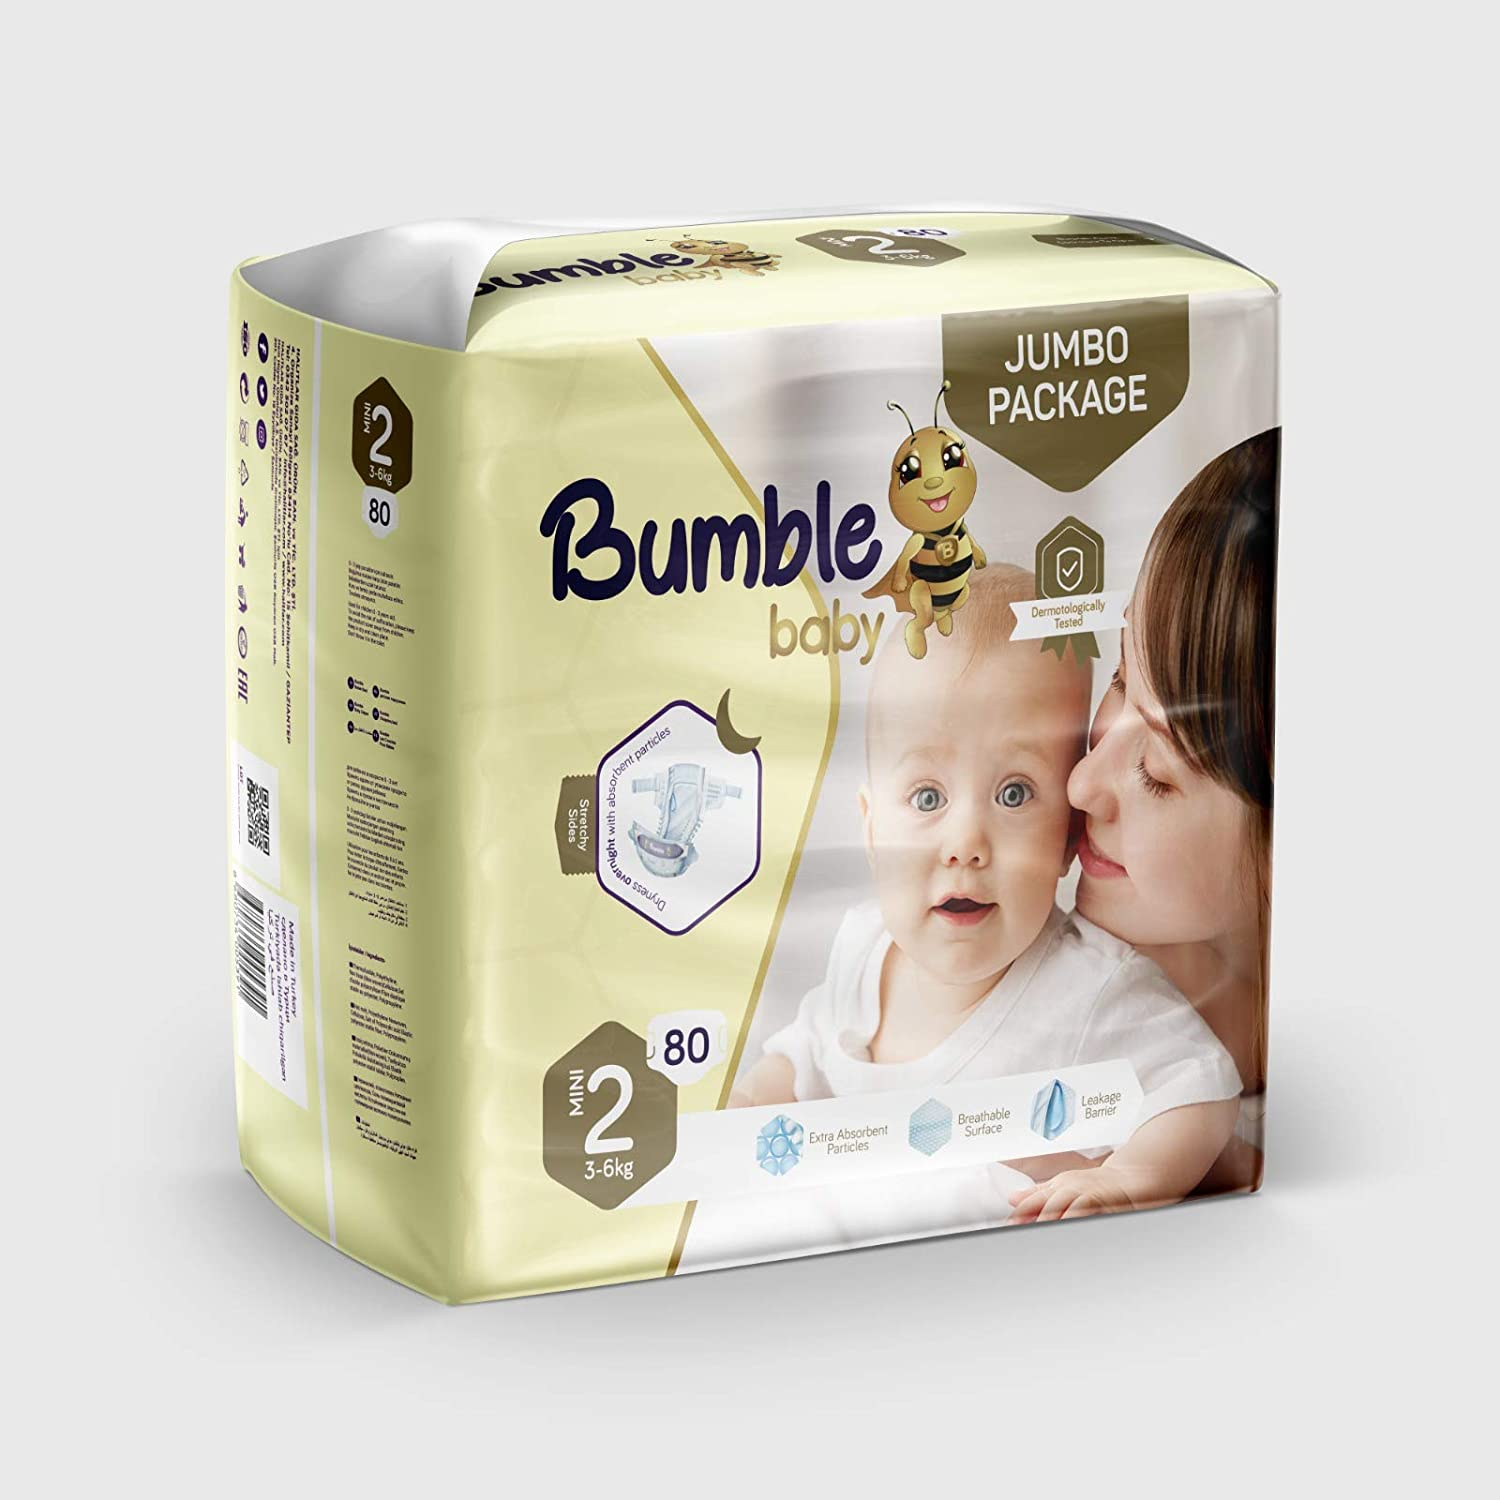 Bumble Baby Diapers Size 2 (3-6 kg) 80 Counts, Jumbo Pack, Drip Proof Barriers, Textile Surfaces, Absorbing Particles, Ultra-Flexible Side Grip Strips